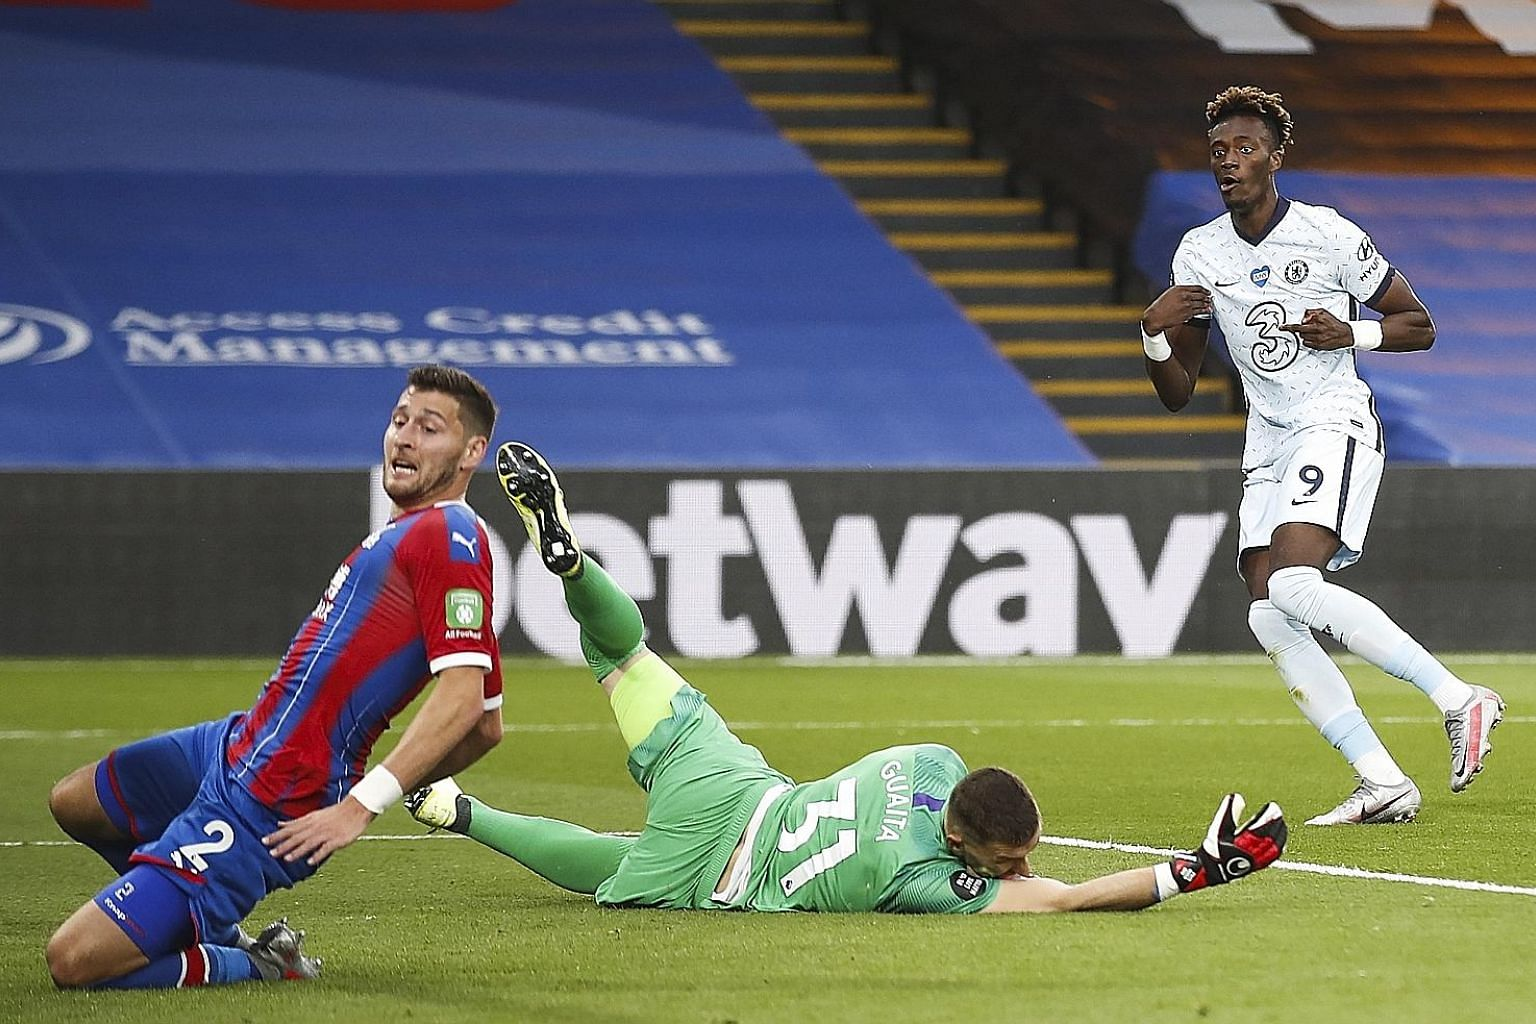 Tammy Abraham (in white) giving Chelsea a 3-1 lead during their Premier League match against Crystal Palace at Stamford Bridge in London on Tuesday. Chelsea won 3-2. PHOTO: EPA-EFE